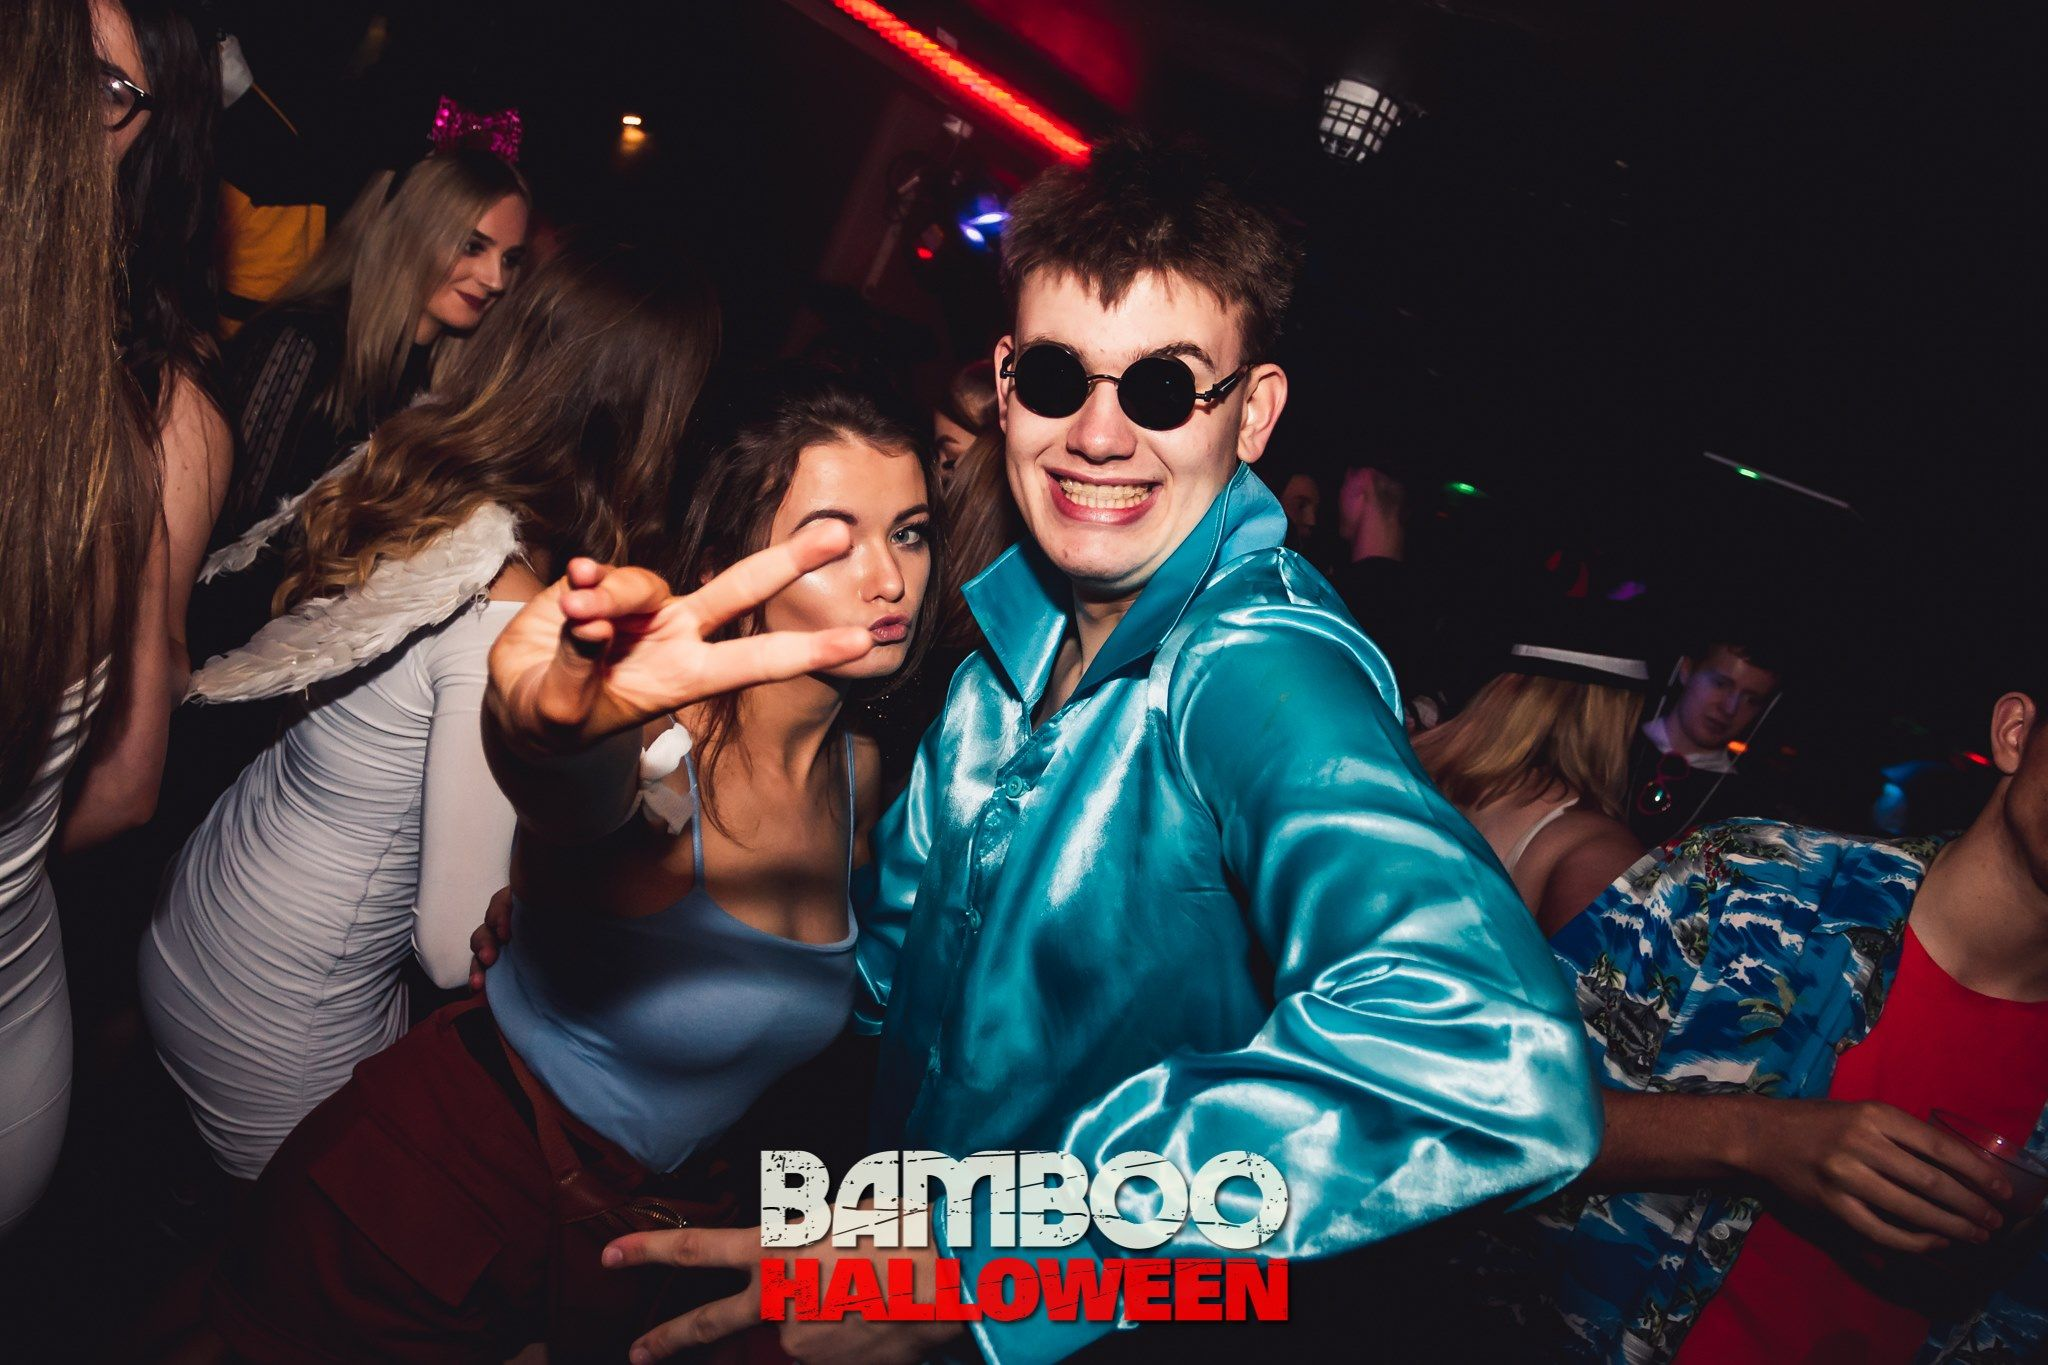 Image may contain: Night Life, Disco, Party, Person, Human, Sunglasses, Accessory, Accessories, Night Club, Club